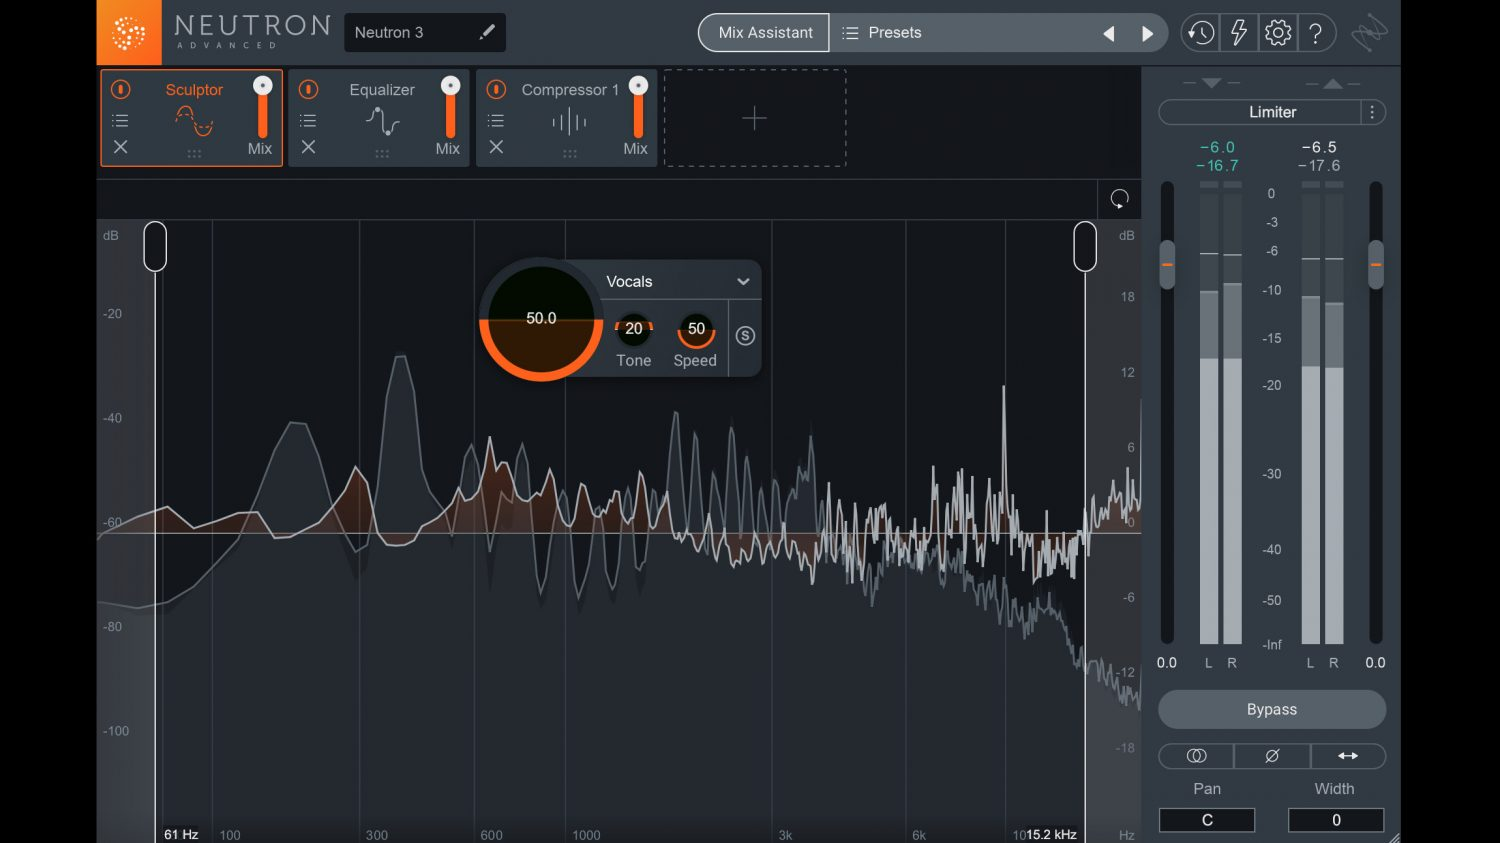 The new iZotope Neutron 3 offers more features than ever before